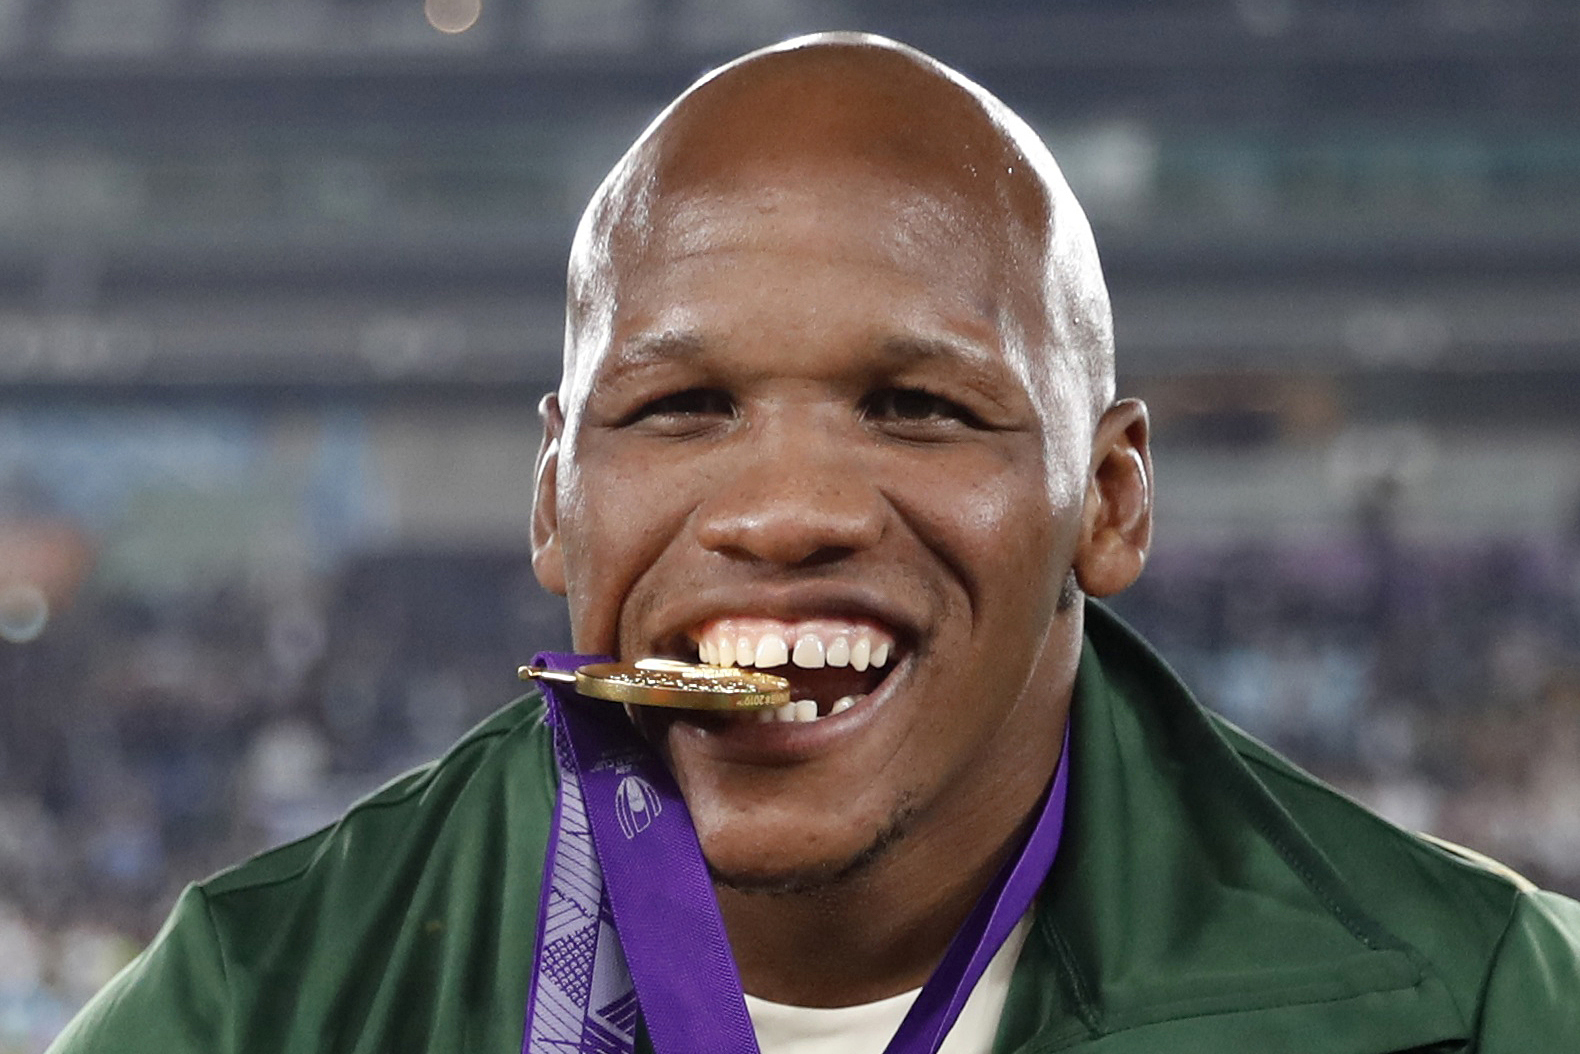 2 November 2019: Bongi Mbonambi celebrating with his gold medal after the Springboks won the Rugby World Cup by beating England in the final at the International Stadium Yokohama in Yokohama, Japan. (Photograph by Reuters/Matthew Childs)